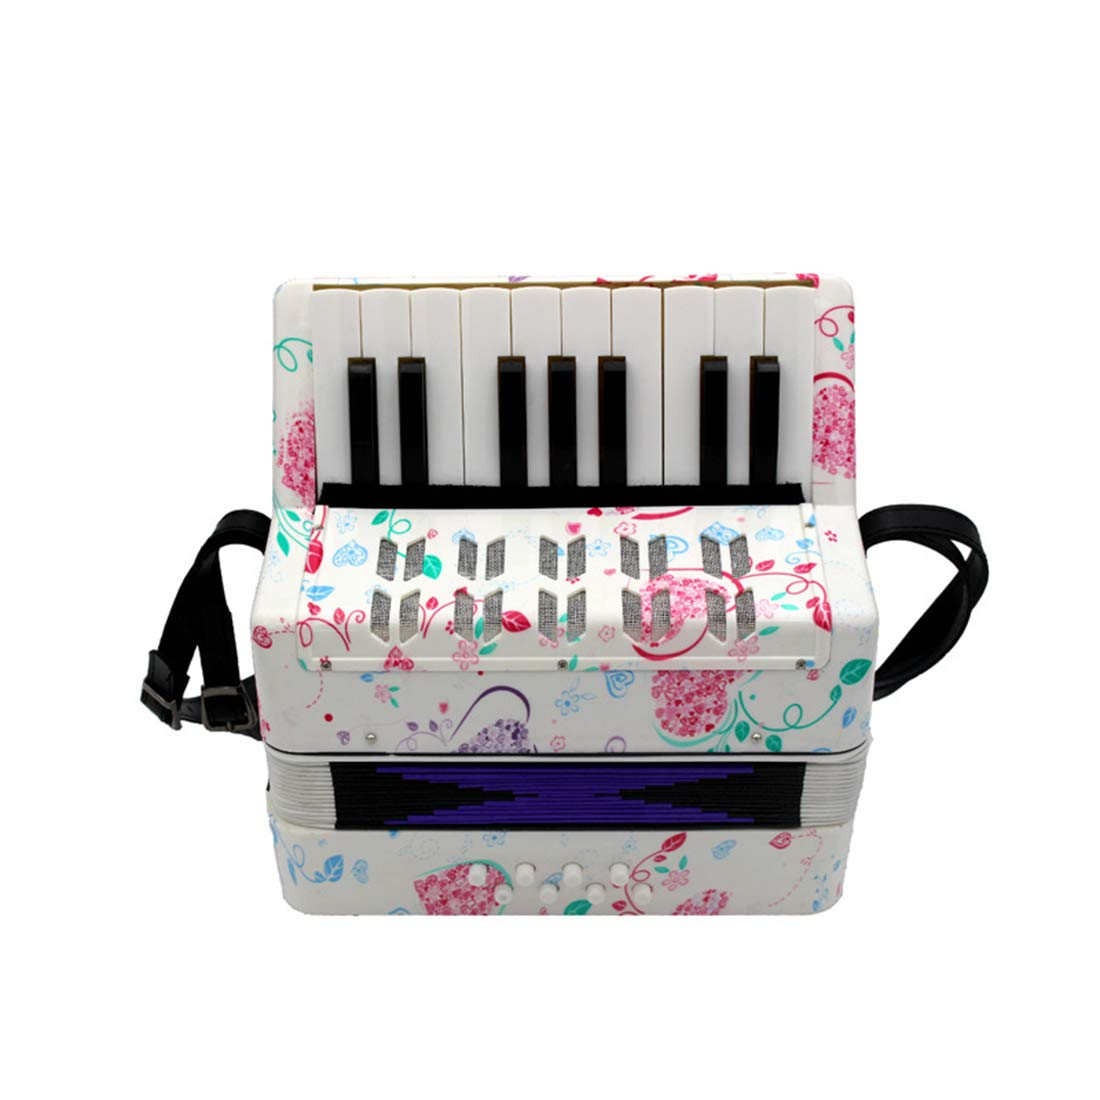 SFQNPA Heart-Shaped Children's Amateur Beginner Mini 17-Key 8 Bass Accordion Educational Instrument Toy Kids Piano Percussion Accordion Musical Toy,Gray by SFQNPA